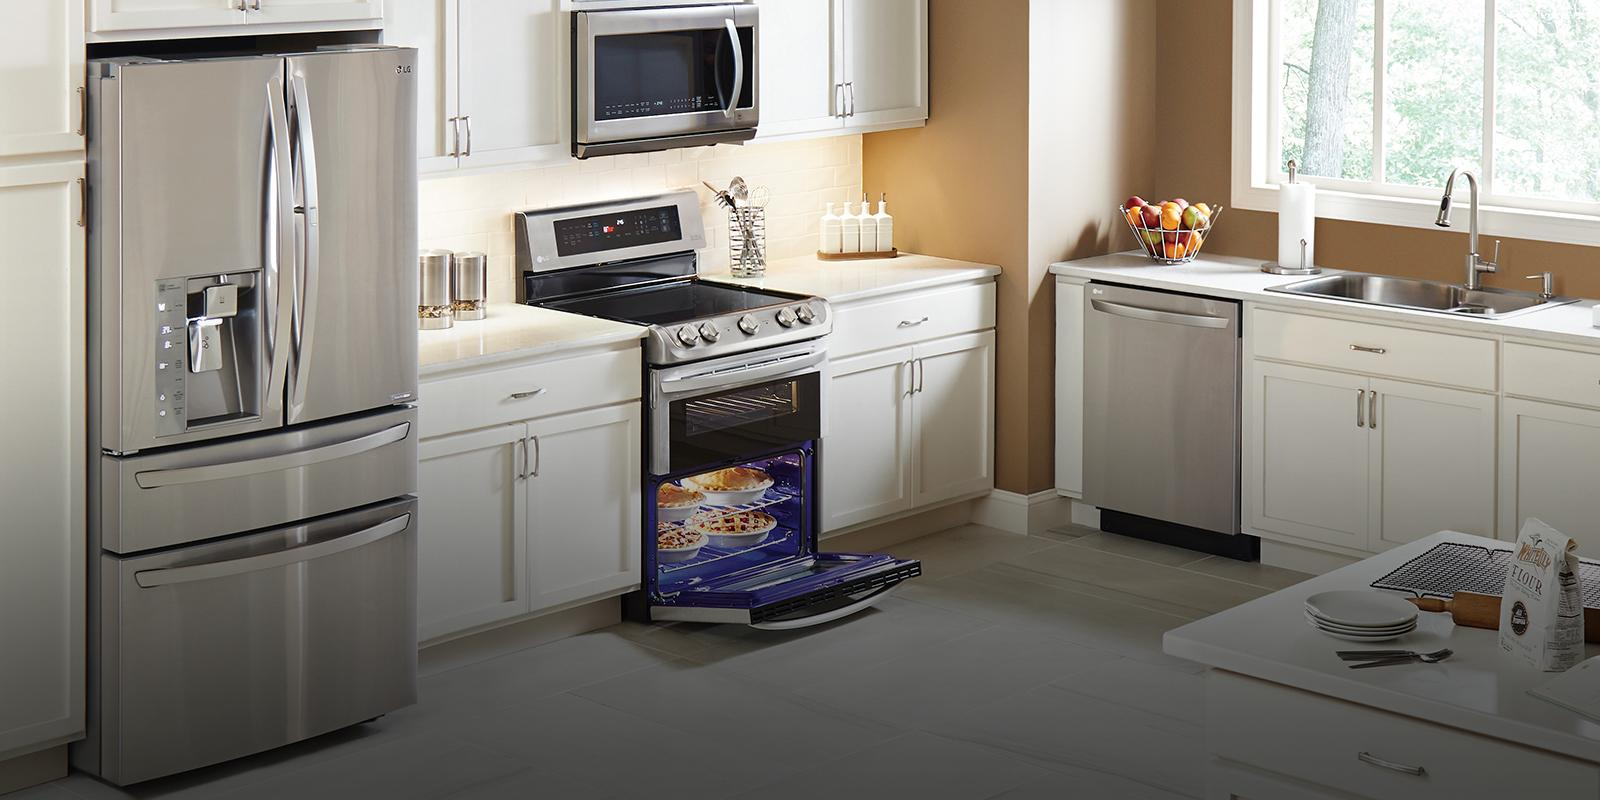 Uncategorized Appliance Kitchen lg appliances compare kitchen home usa bring the cutting edge back to kitchen